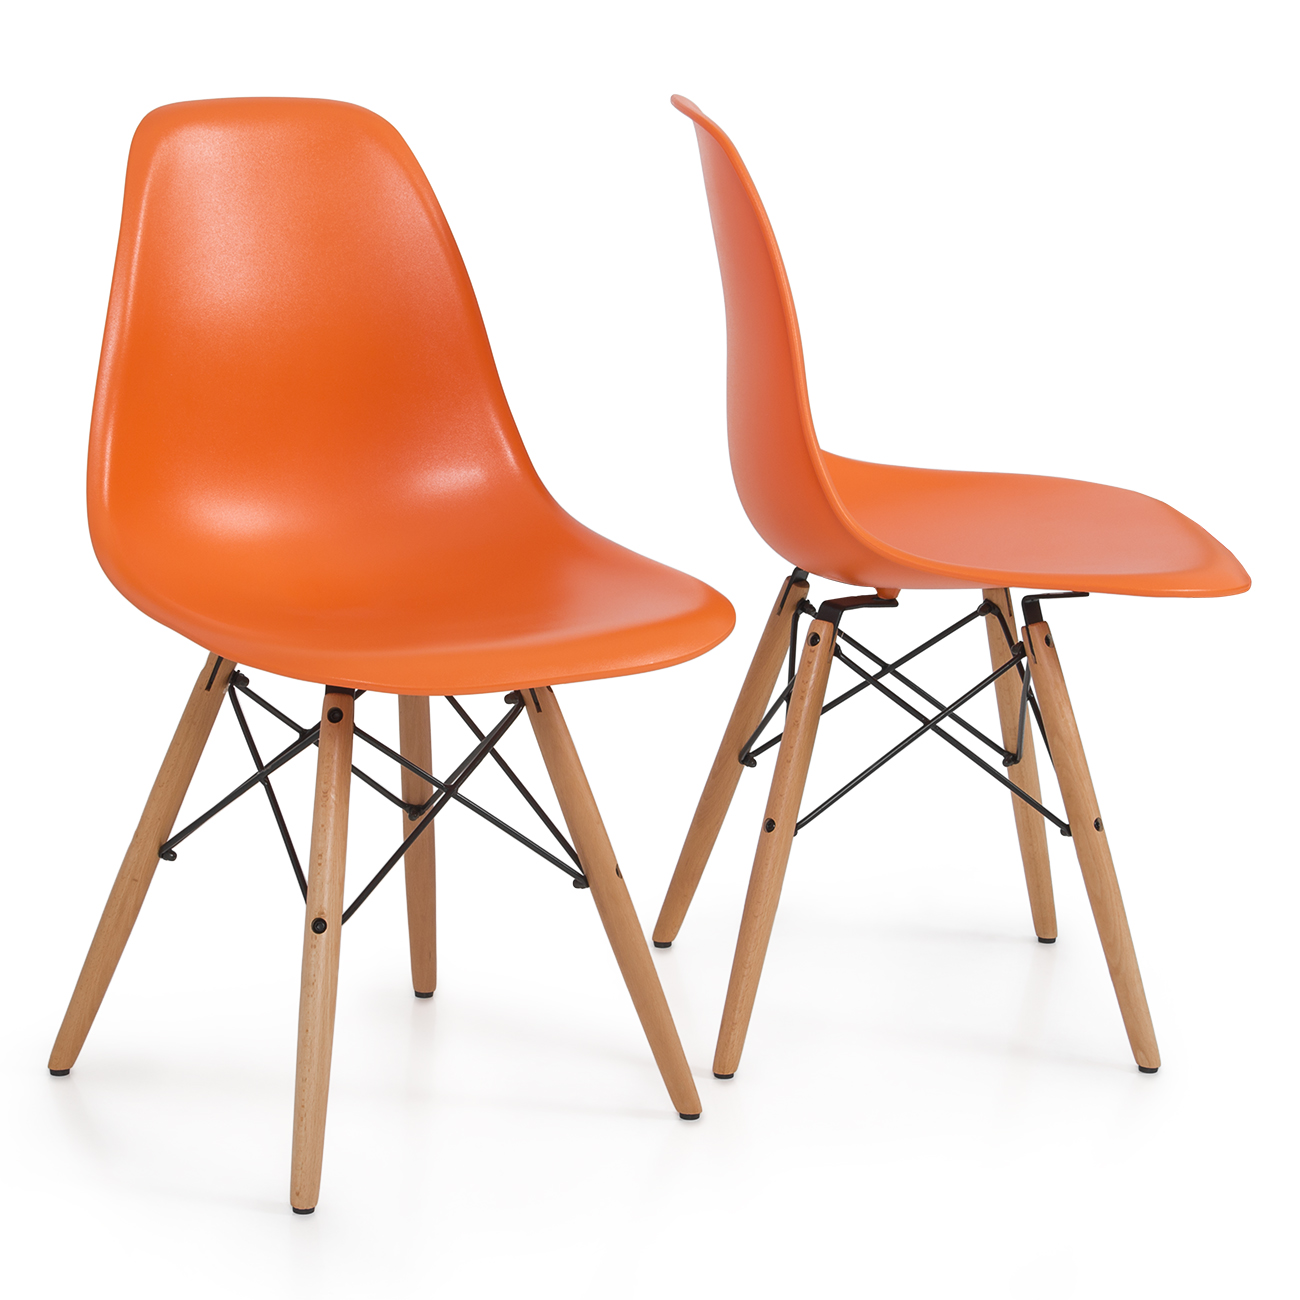 modern chair plastic. Set Of 2 Orange Armless Plastic Molded Side Dining Chair Modern Natural Wood Leg R